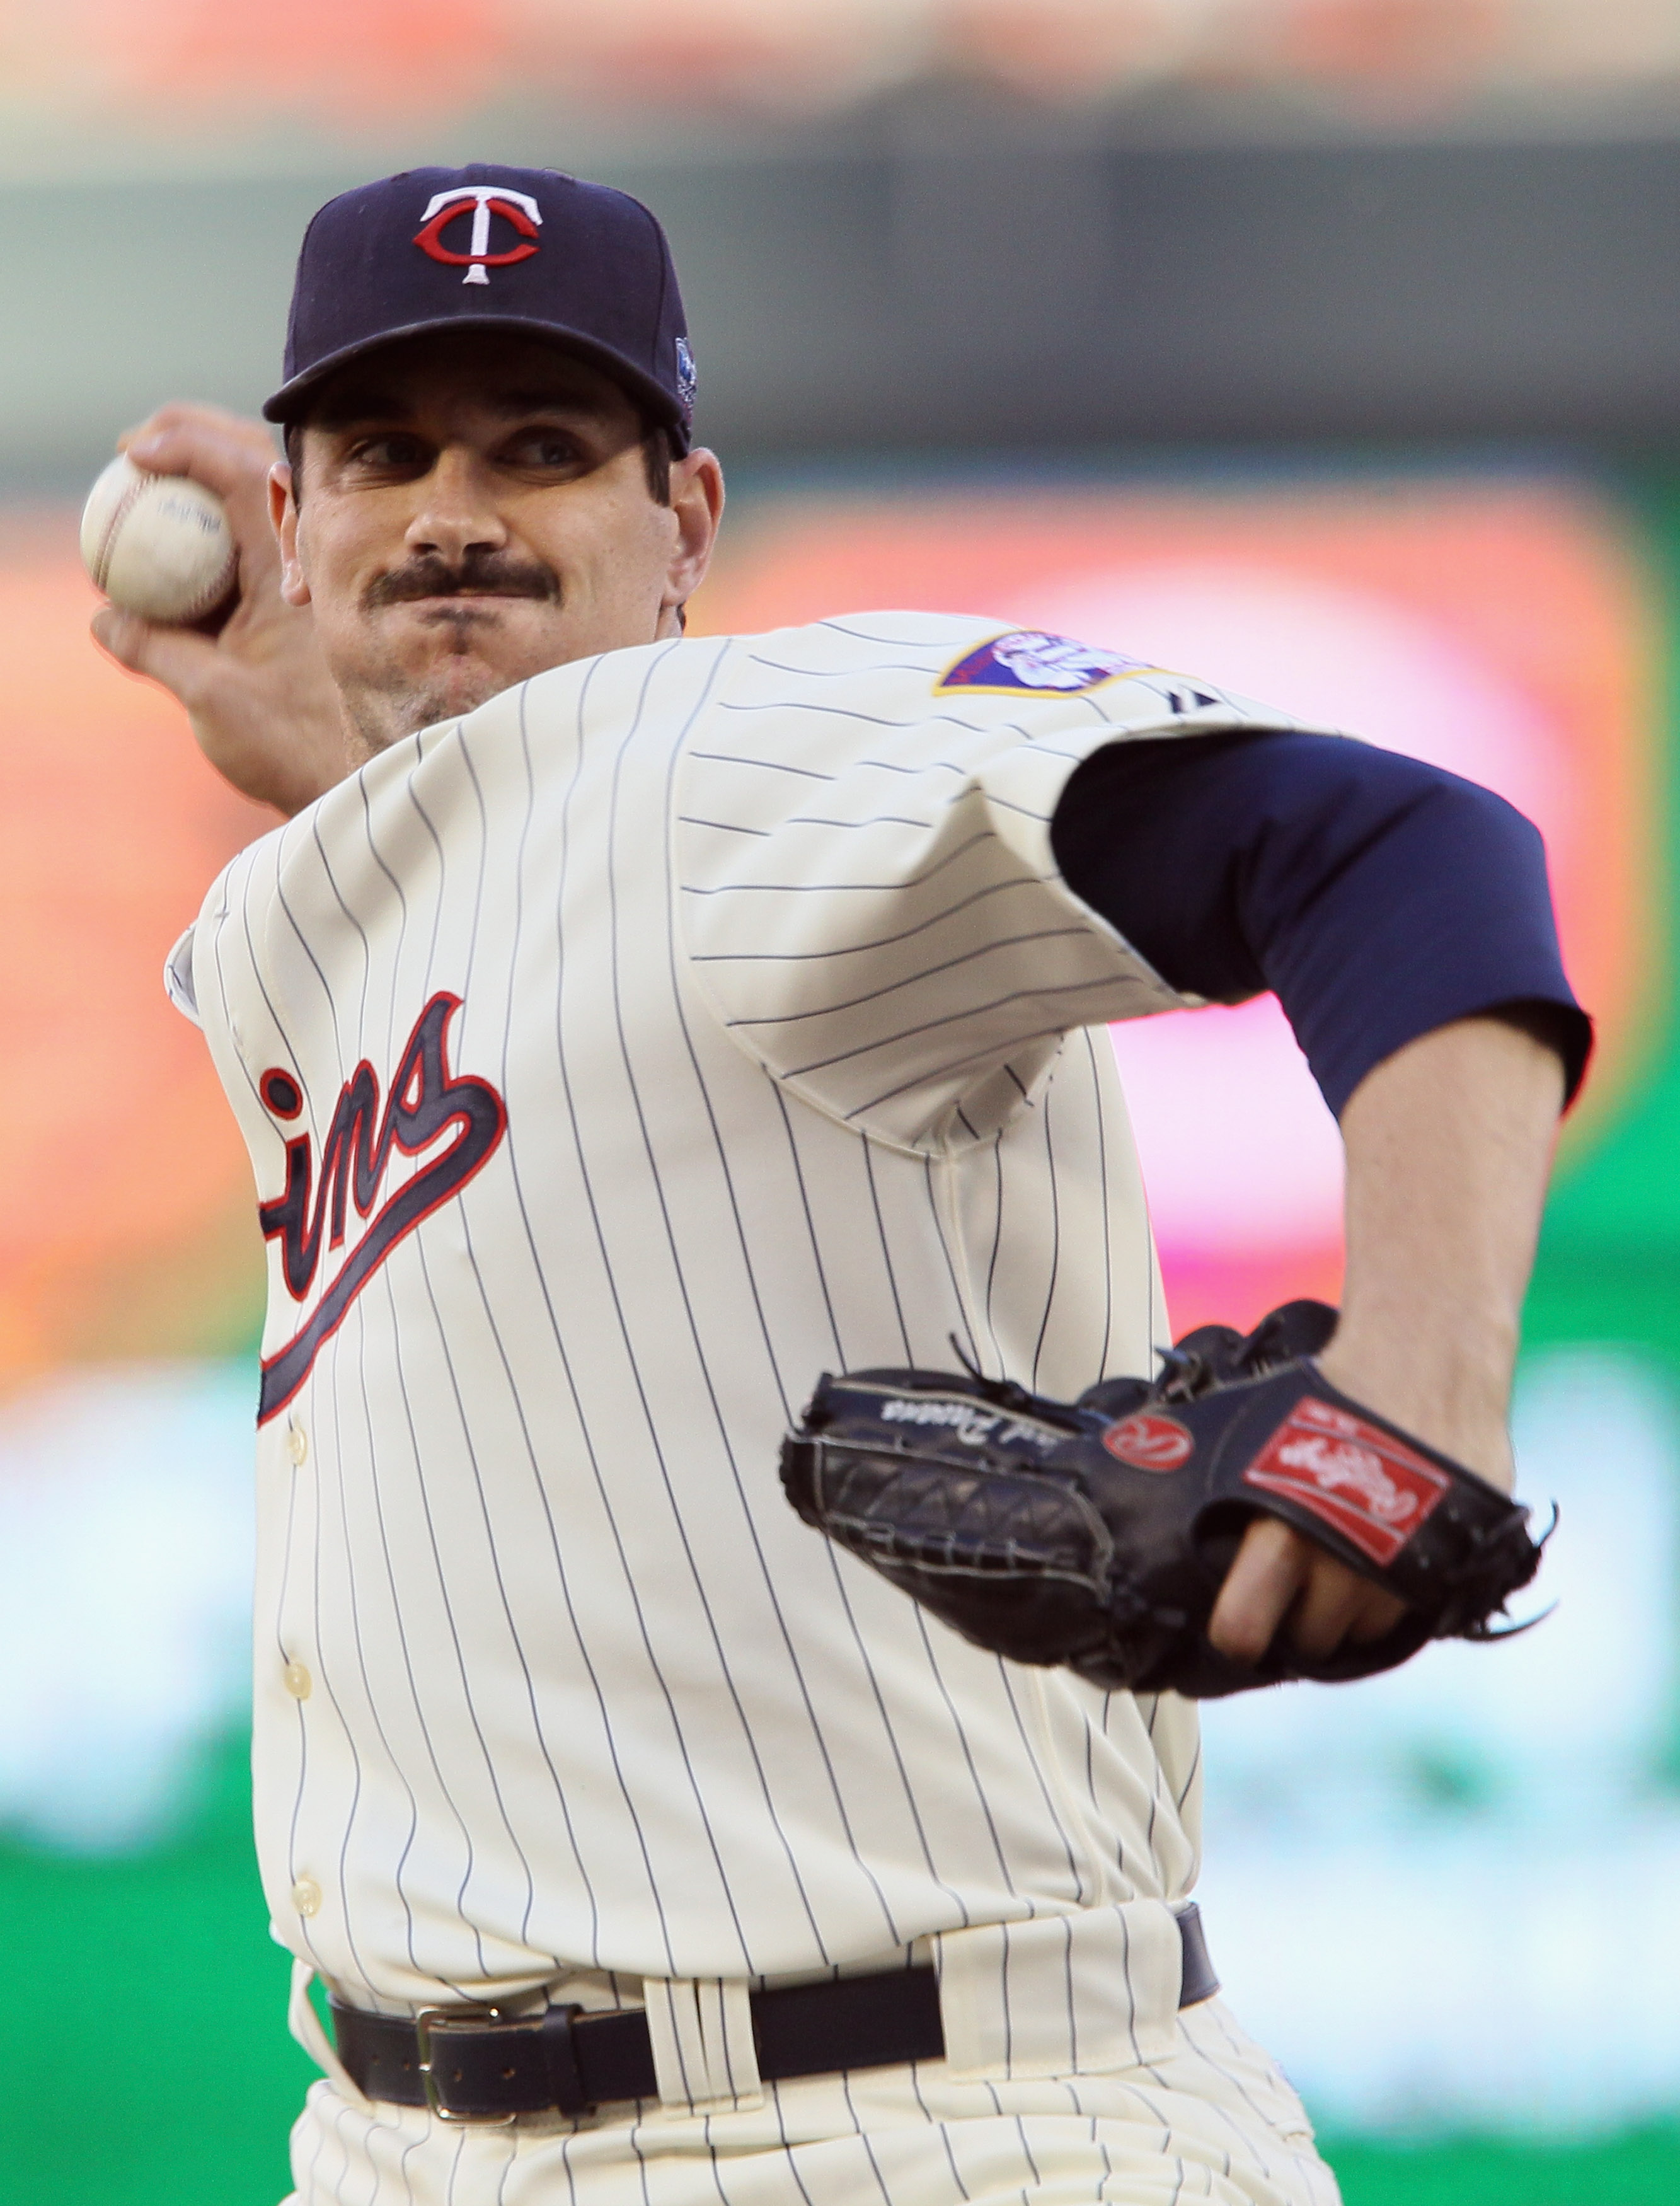 The Stache may pitch elsewhere in 2011.